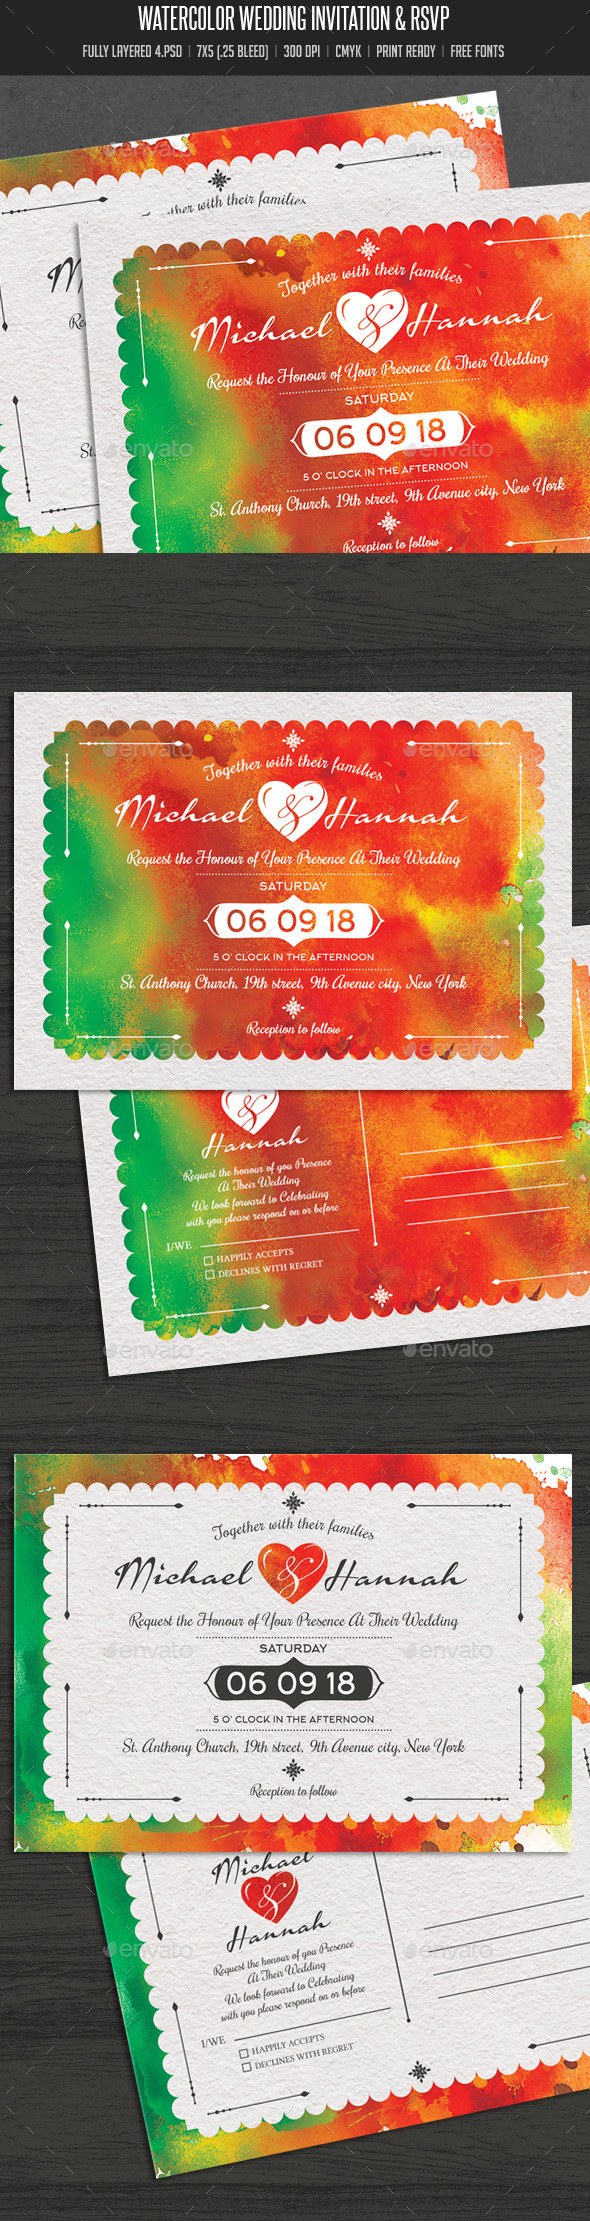 Watercolor Wedding Invitation & RSVP - Cards & Invites Print Templates